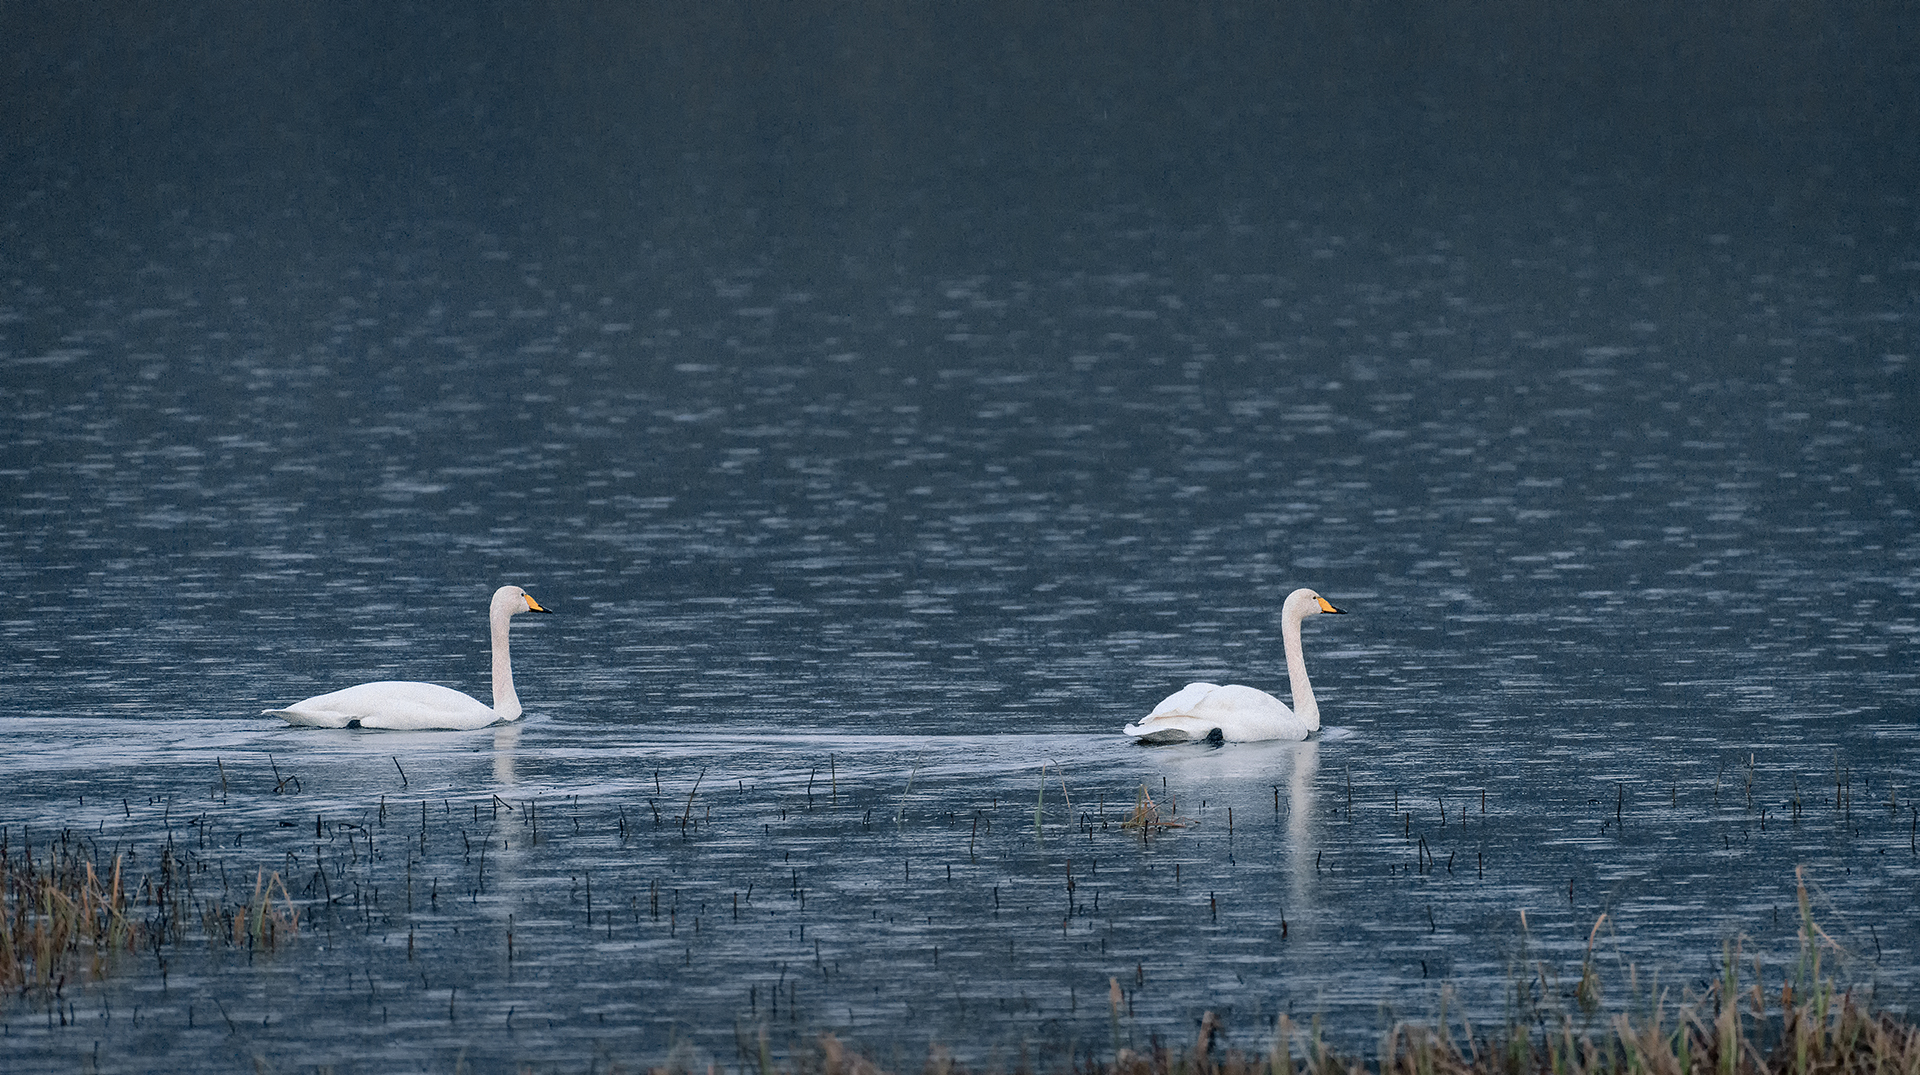 Swans - November Rain   Unwearied still, lover by lover,they paddle in the cold. Companionable streams or climb the air; Their hearts have not grown old;Passion or conquest, wander where they will,attend upon them still. (William Butler Yeats - The wild Swans at Coole)